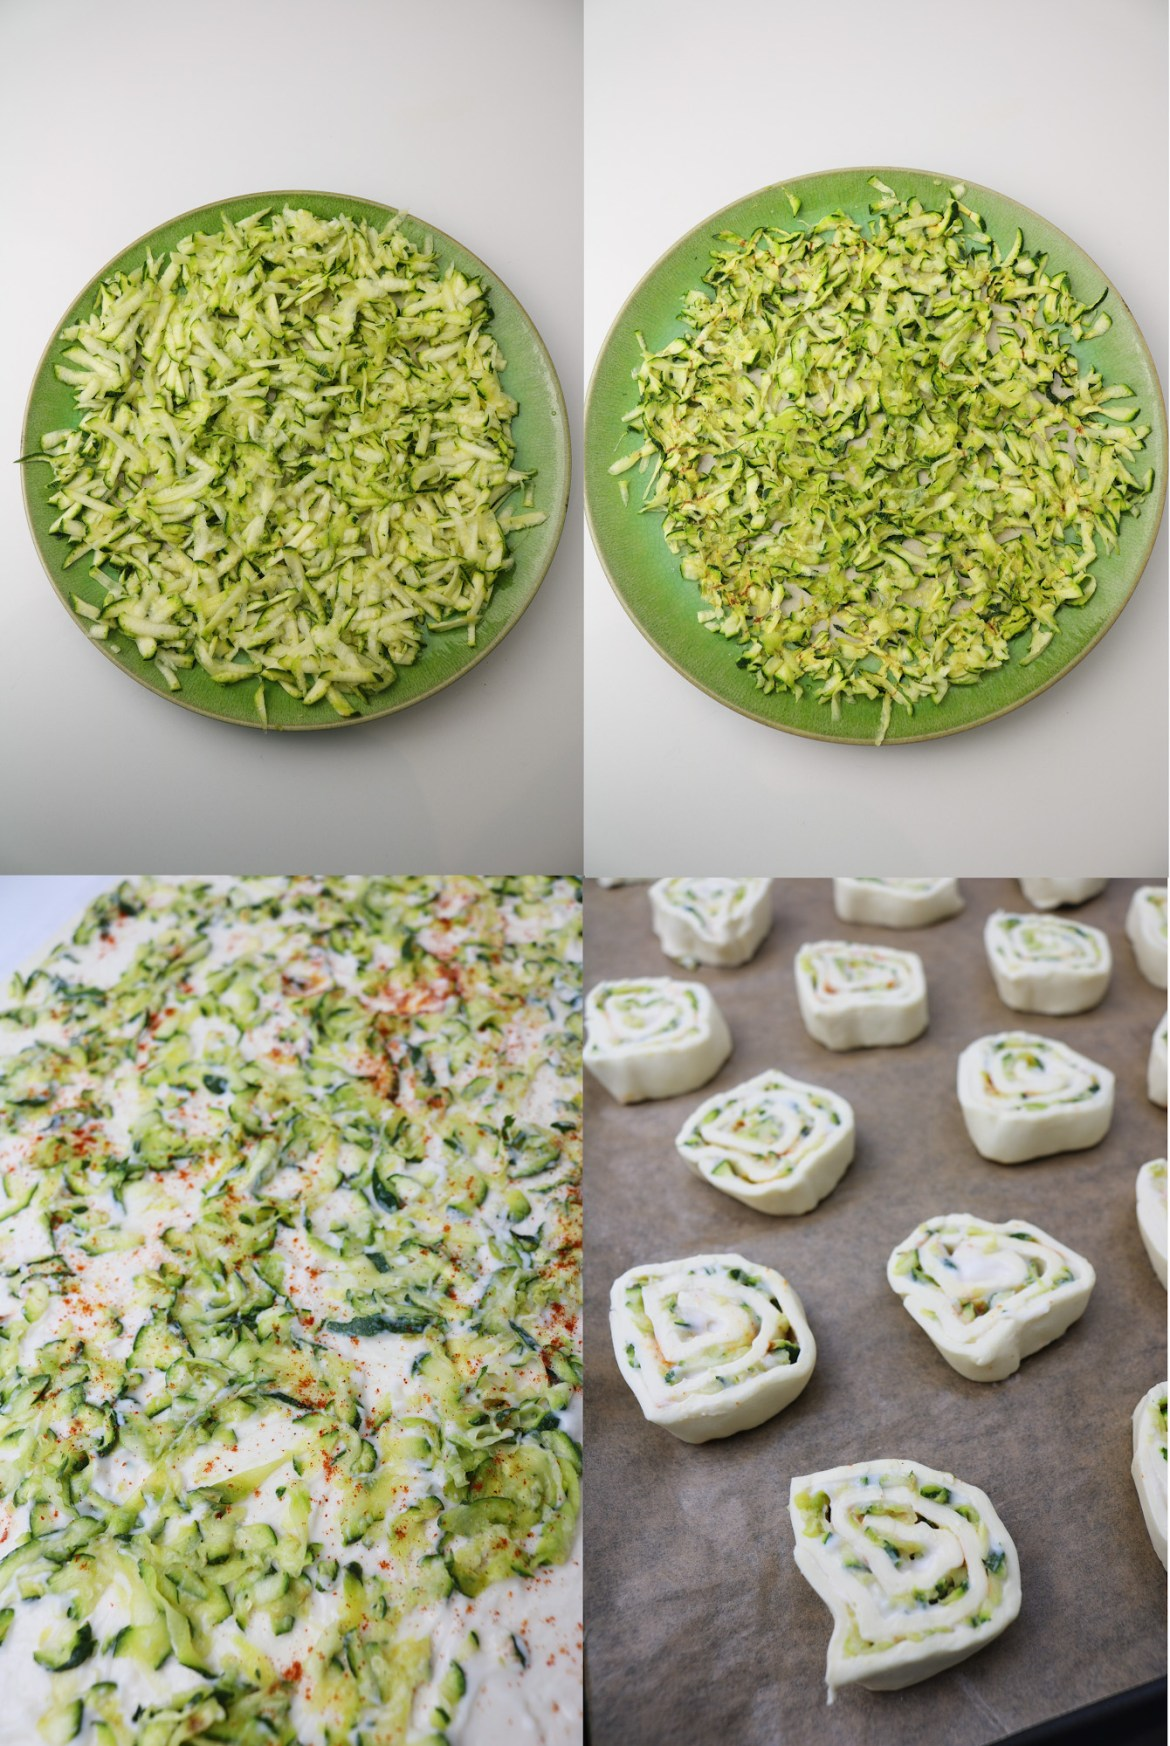 vegan courgette and smoked paprika pastry rolls preparation picture collage